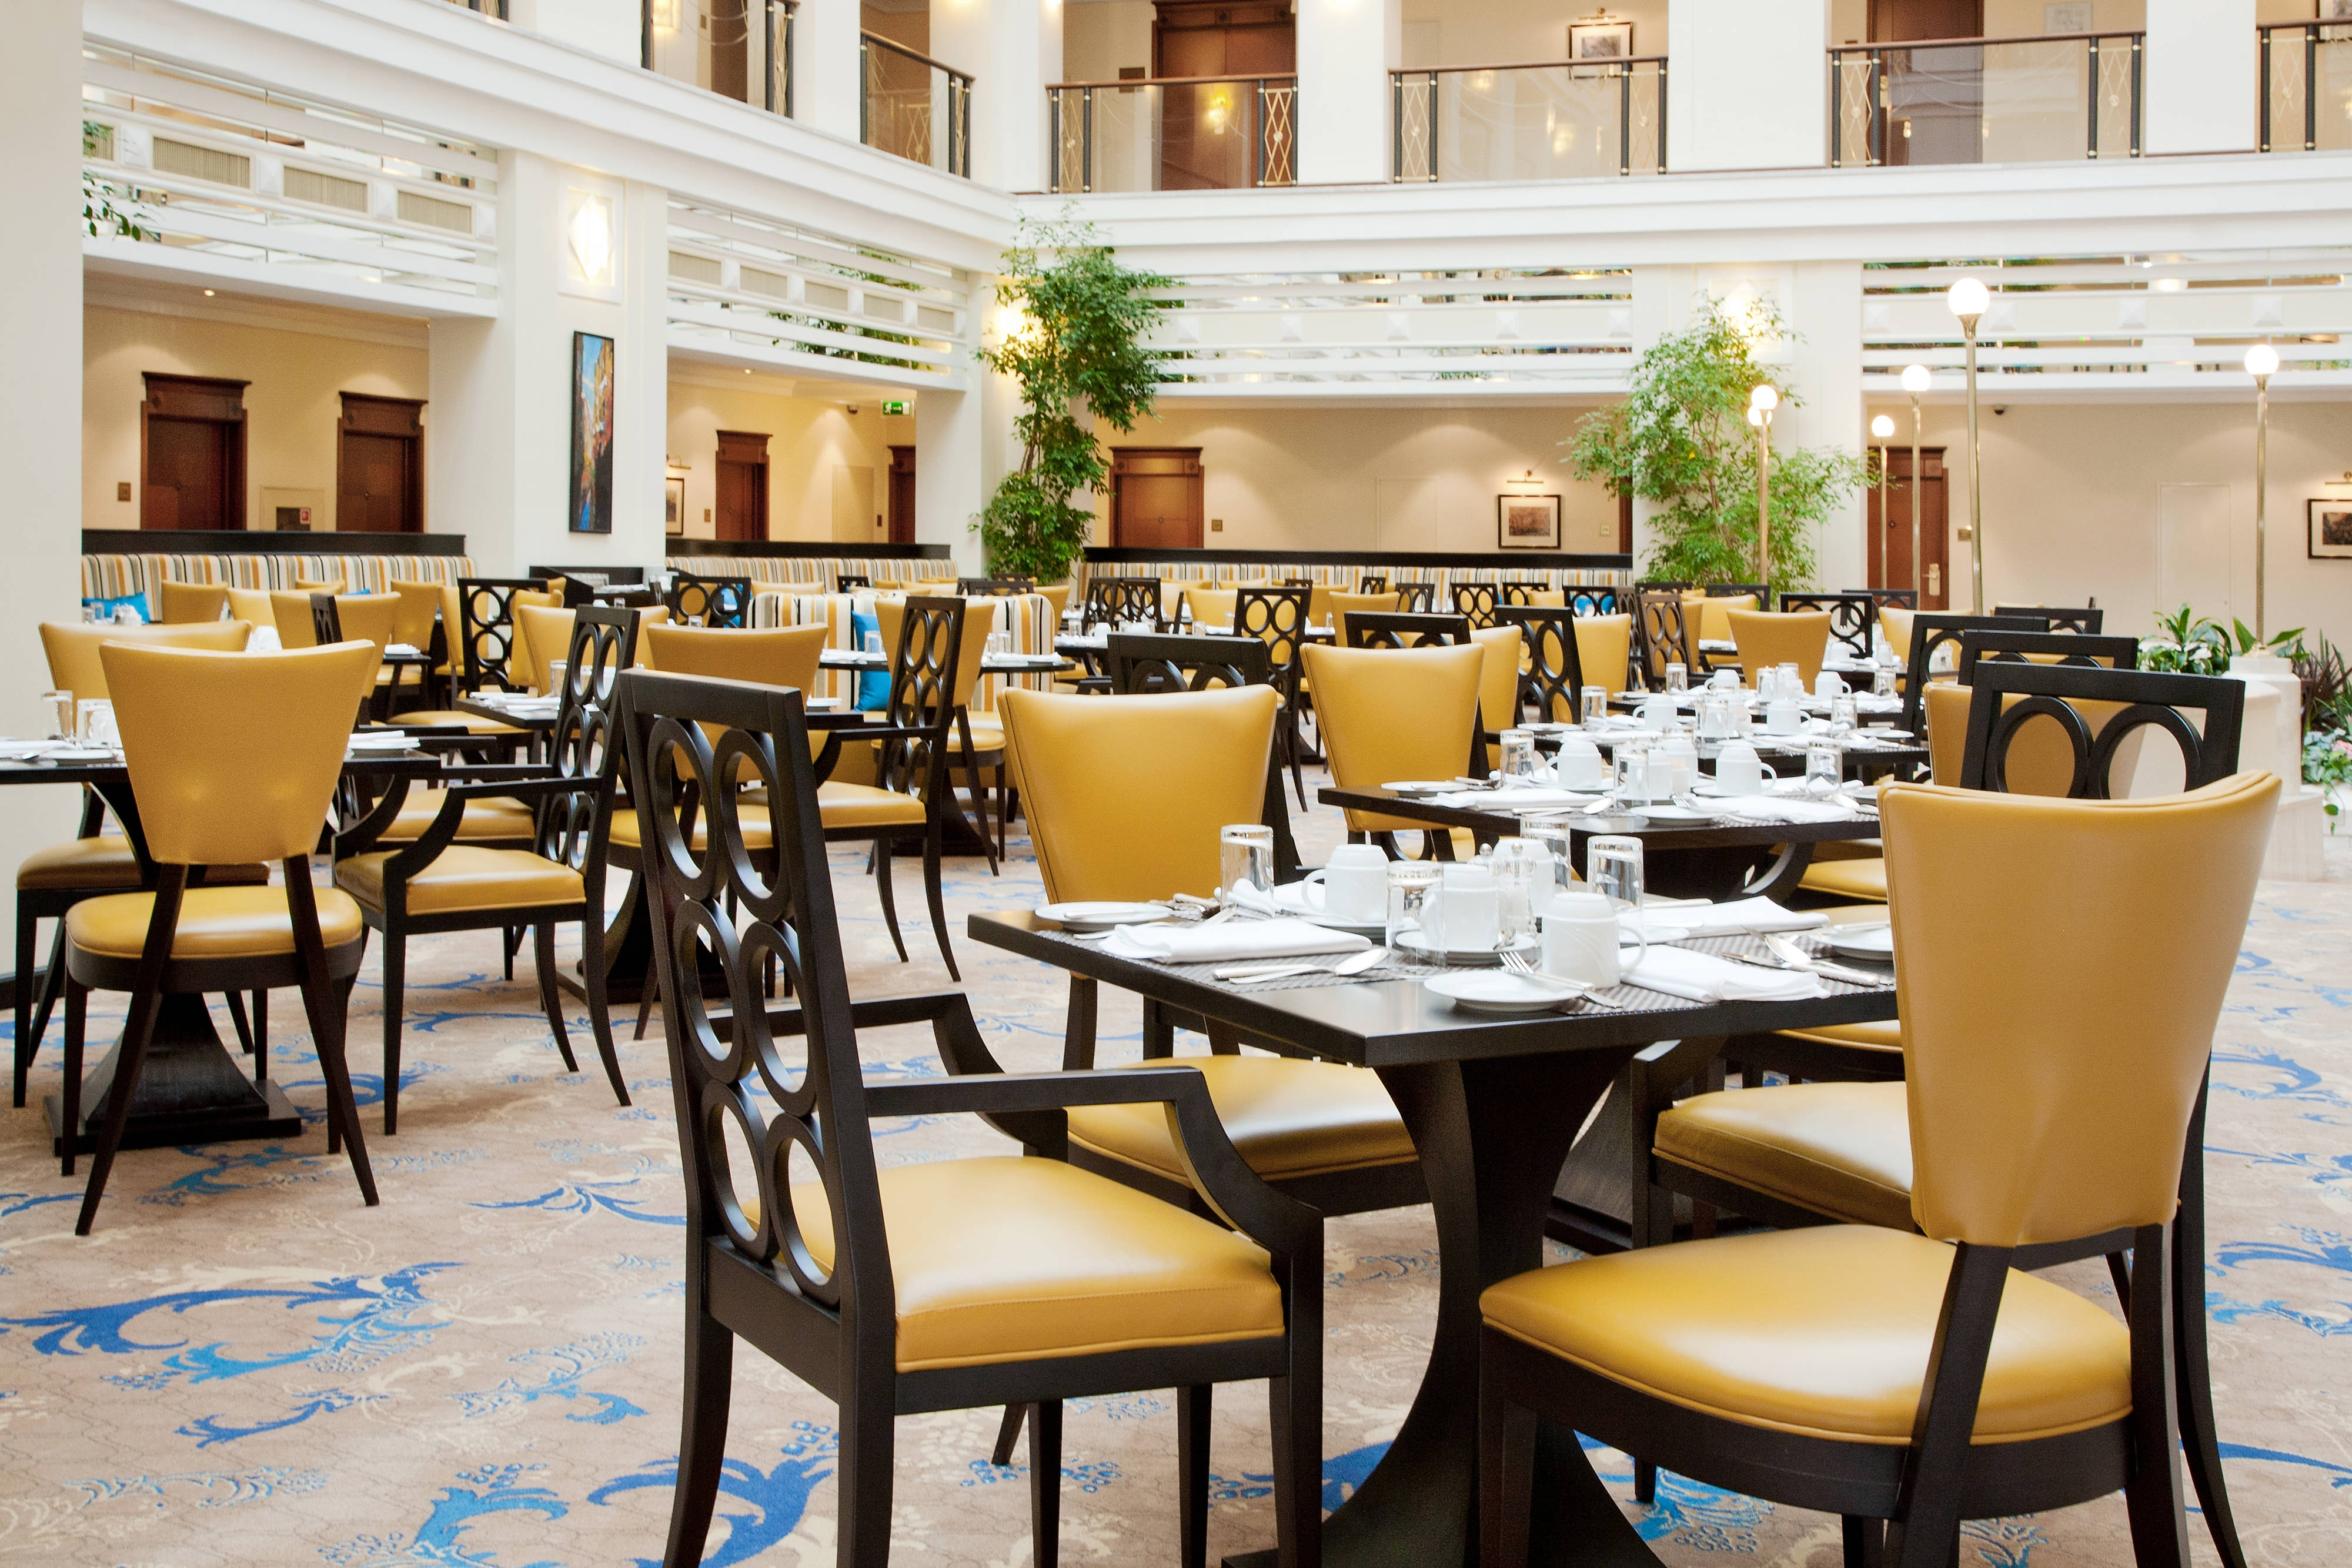 Restaurant des Marriott Royal Aurora, Moskau